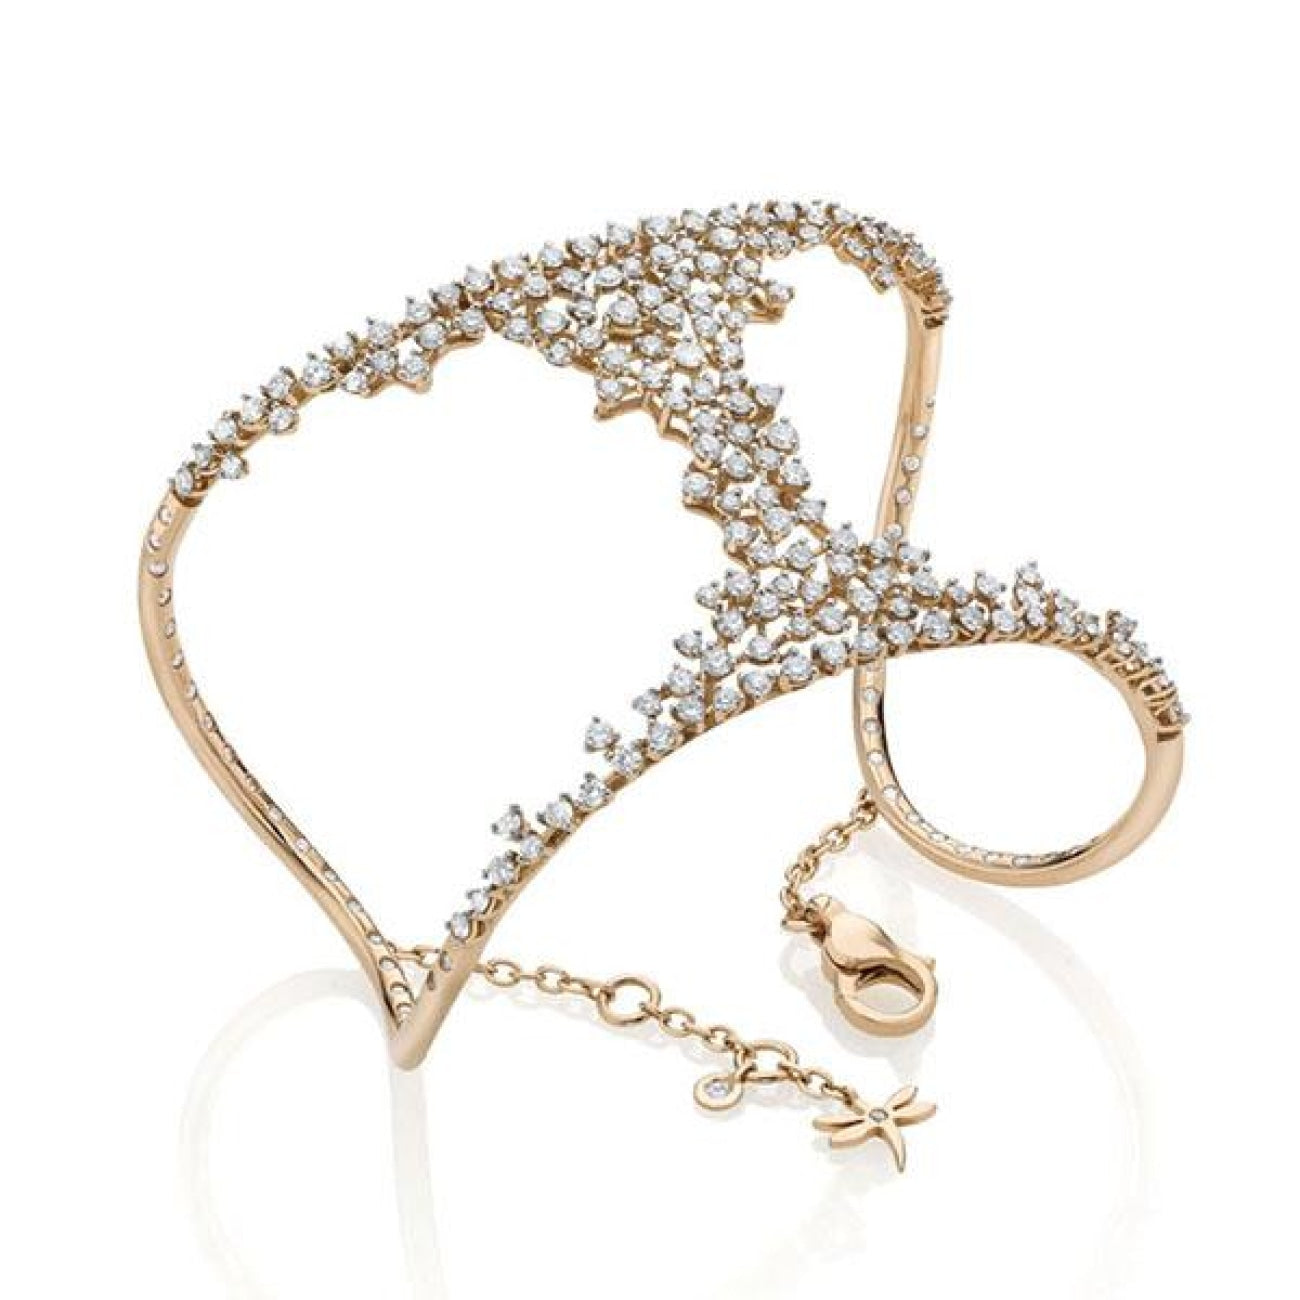 Casato Jewelry - Miss Chi bracelet | Manfredi Jewels